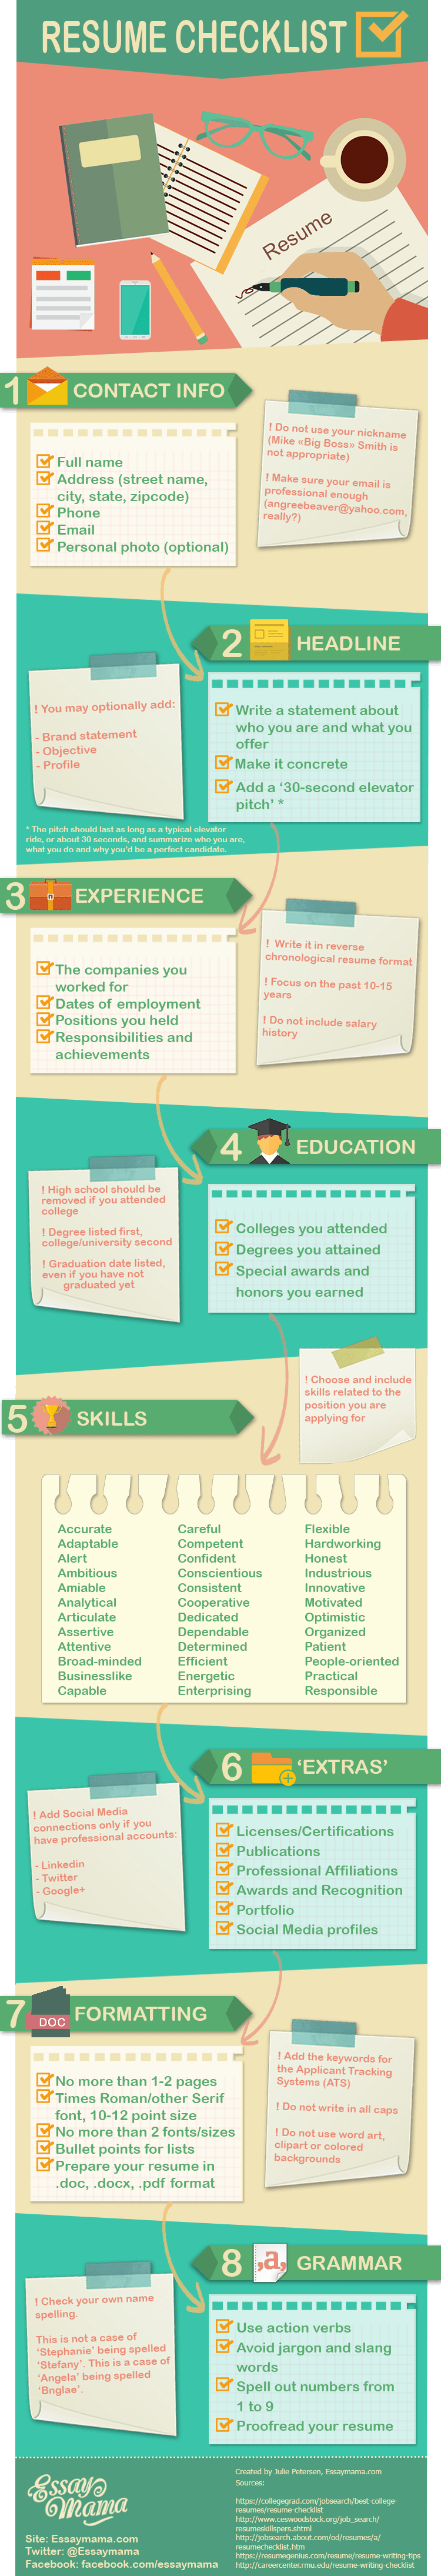 resume checklist_infographic